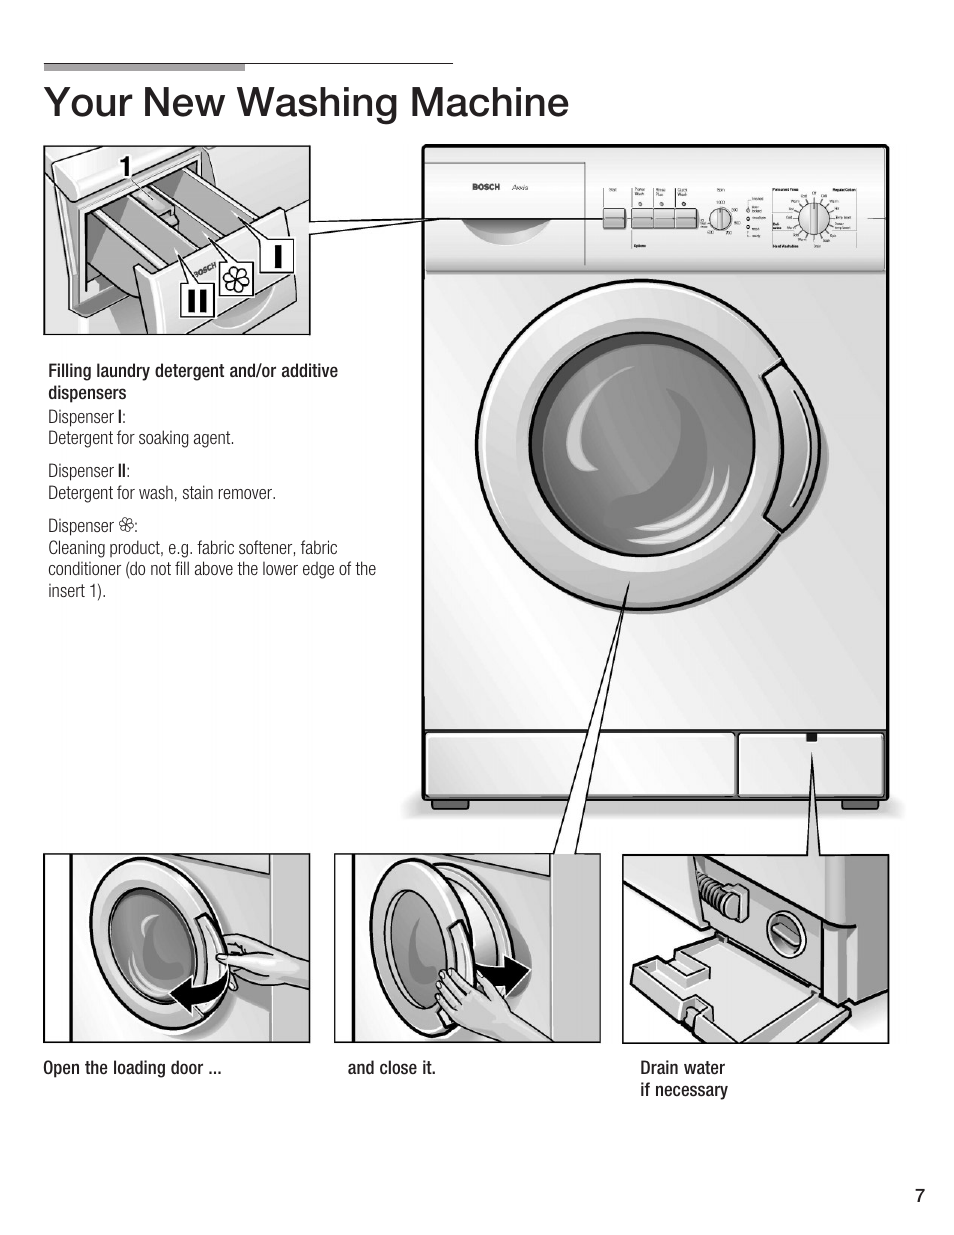 Your New Washing Machine Bosch Aus Wfl 2050 User Manual Page 7 36